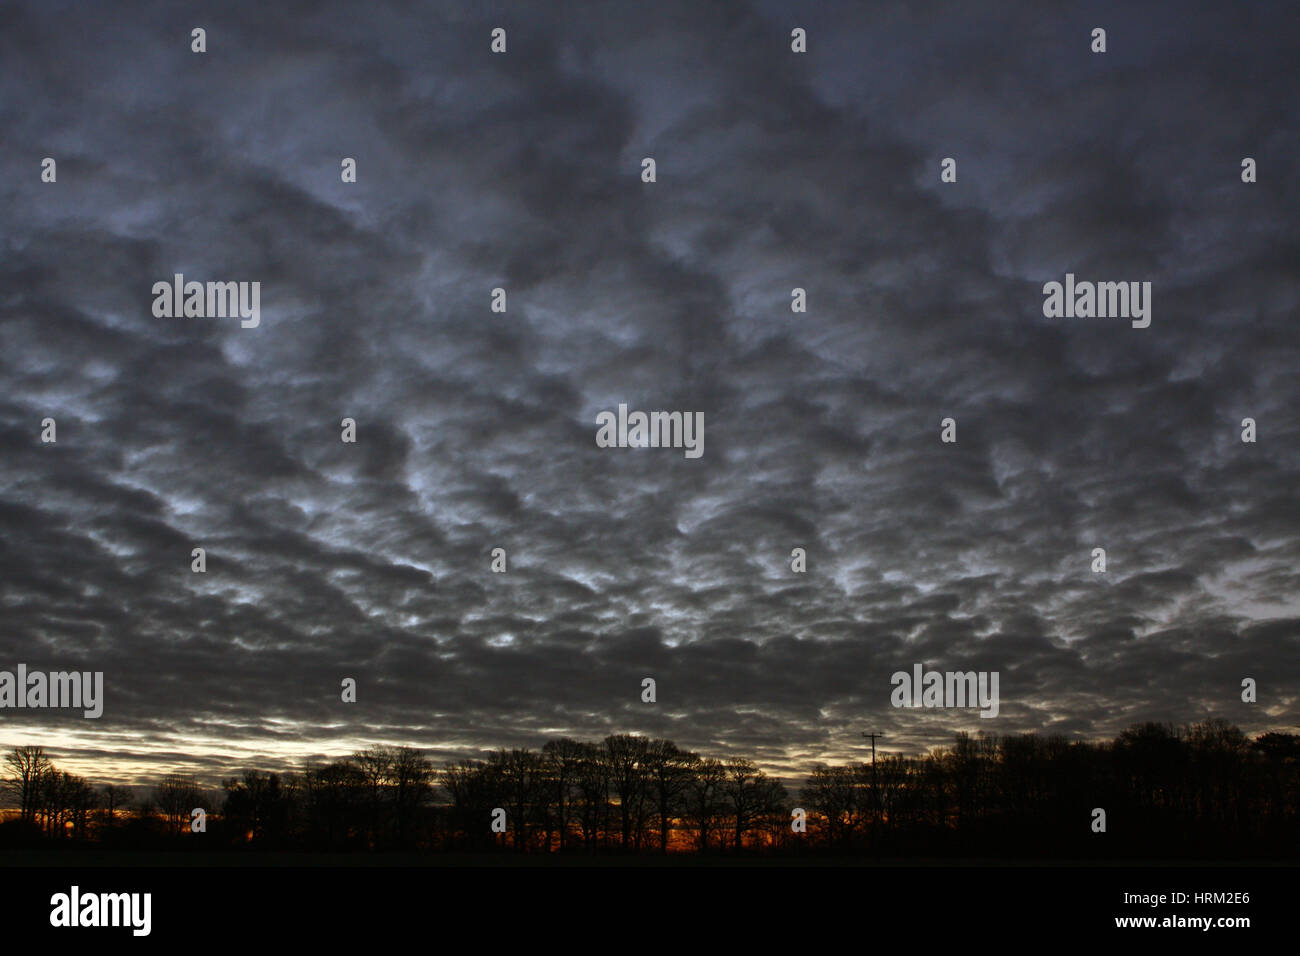 A moody sky just before a winter sunrise in Wittersham, Kent, England. Stock Photo